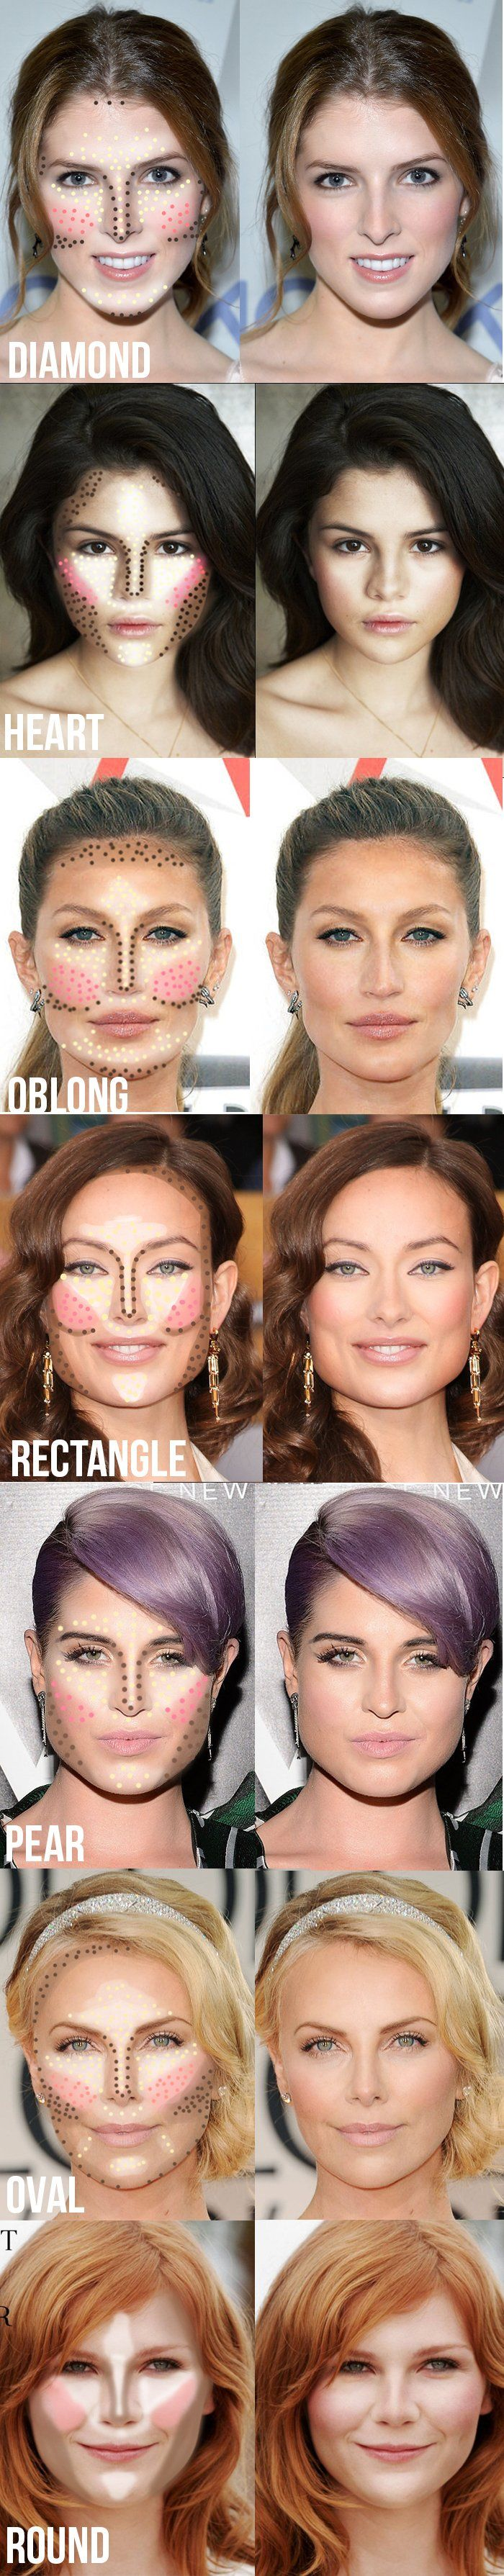 How to contour for your face shape #makeup